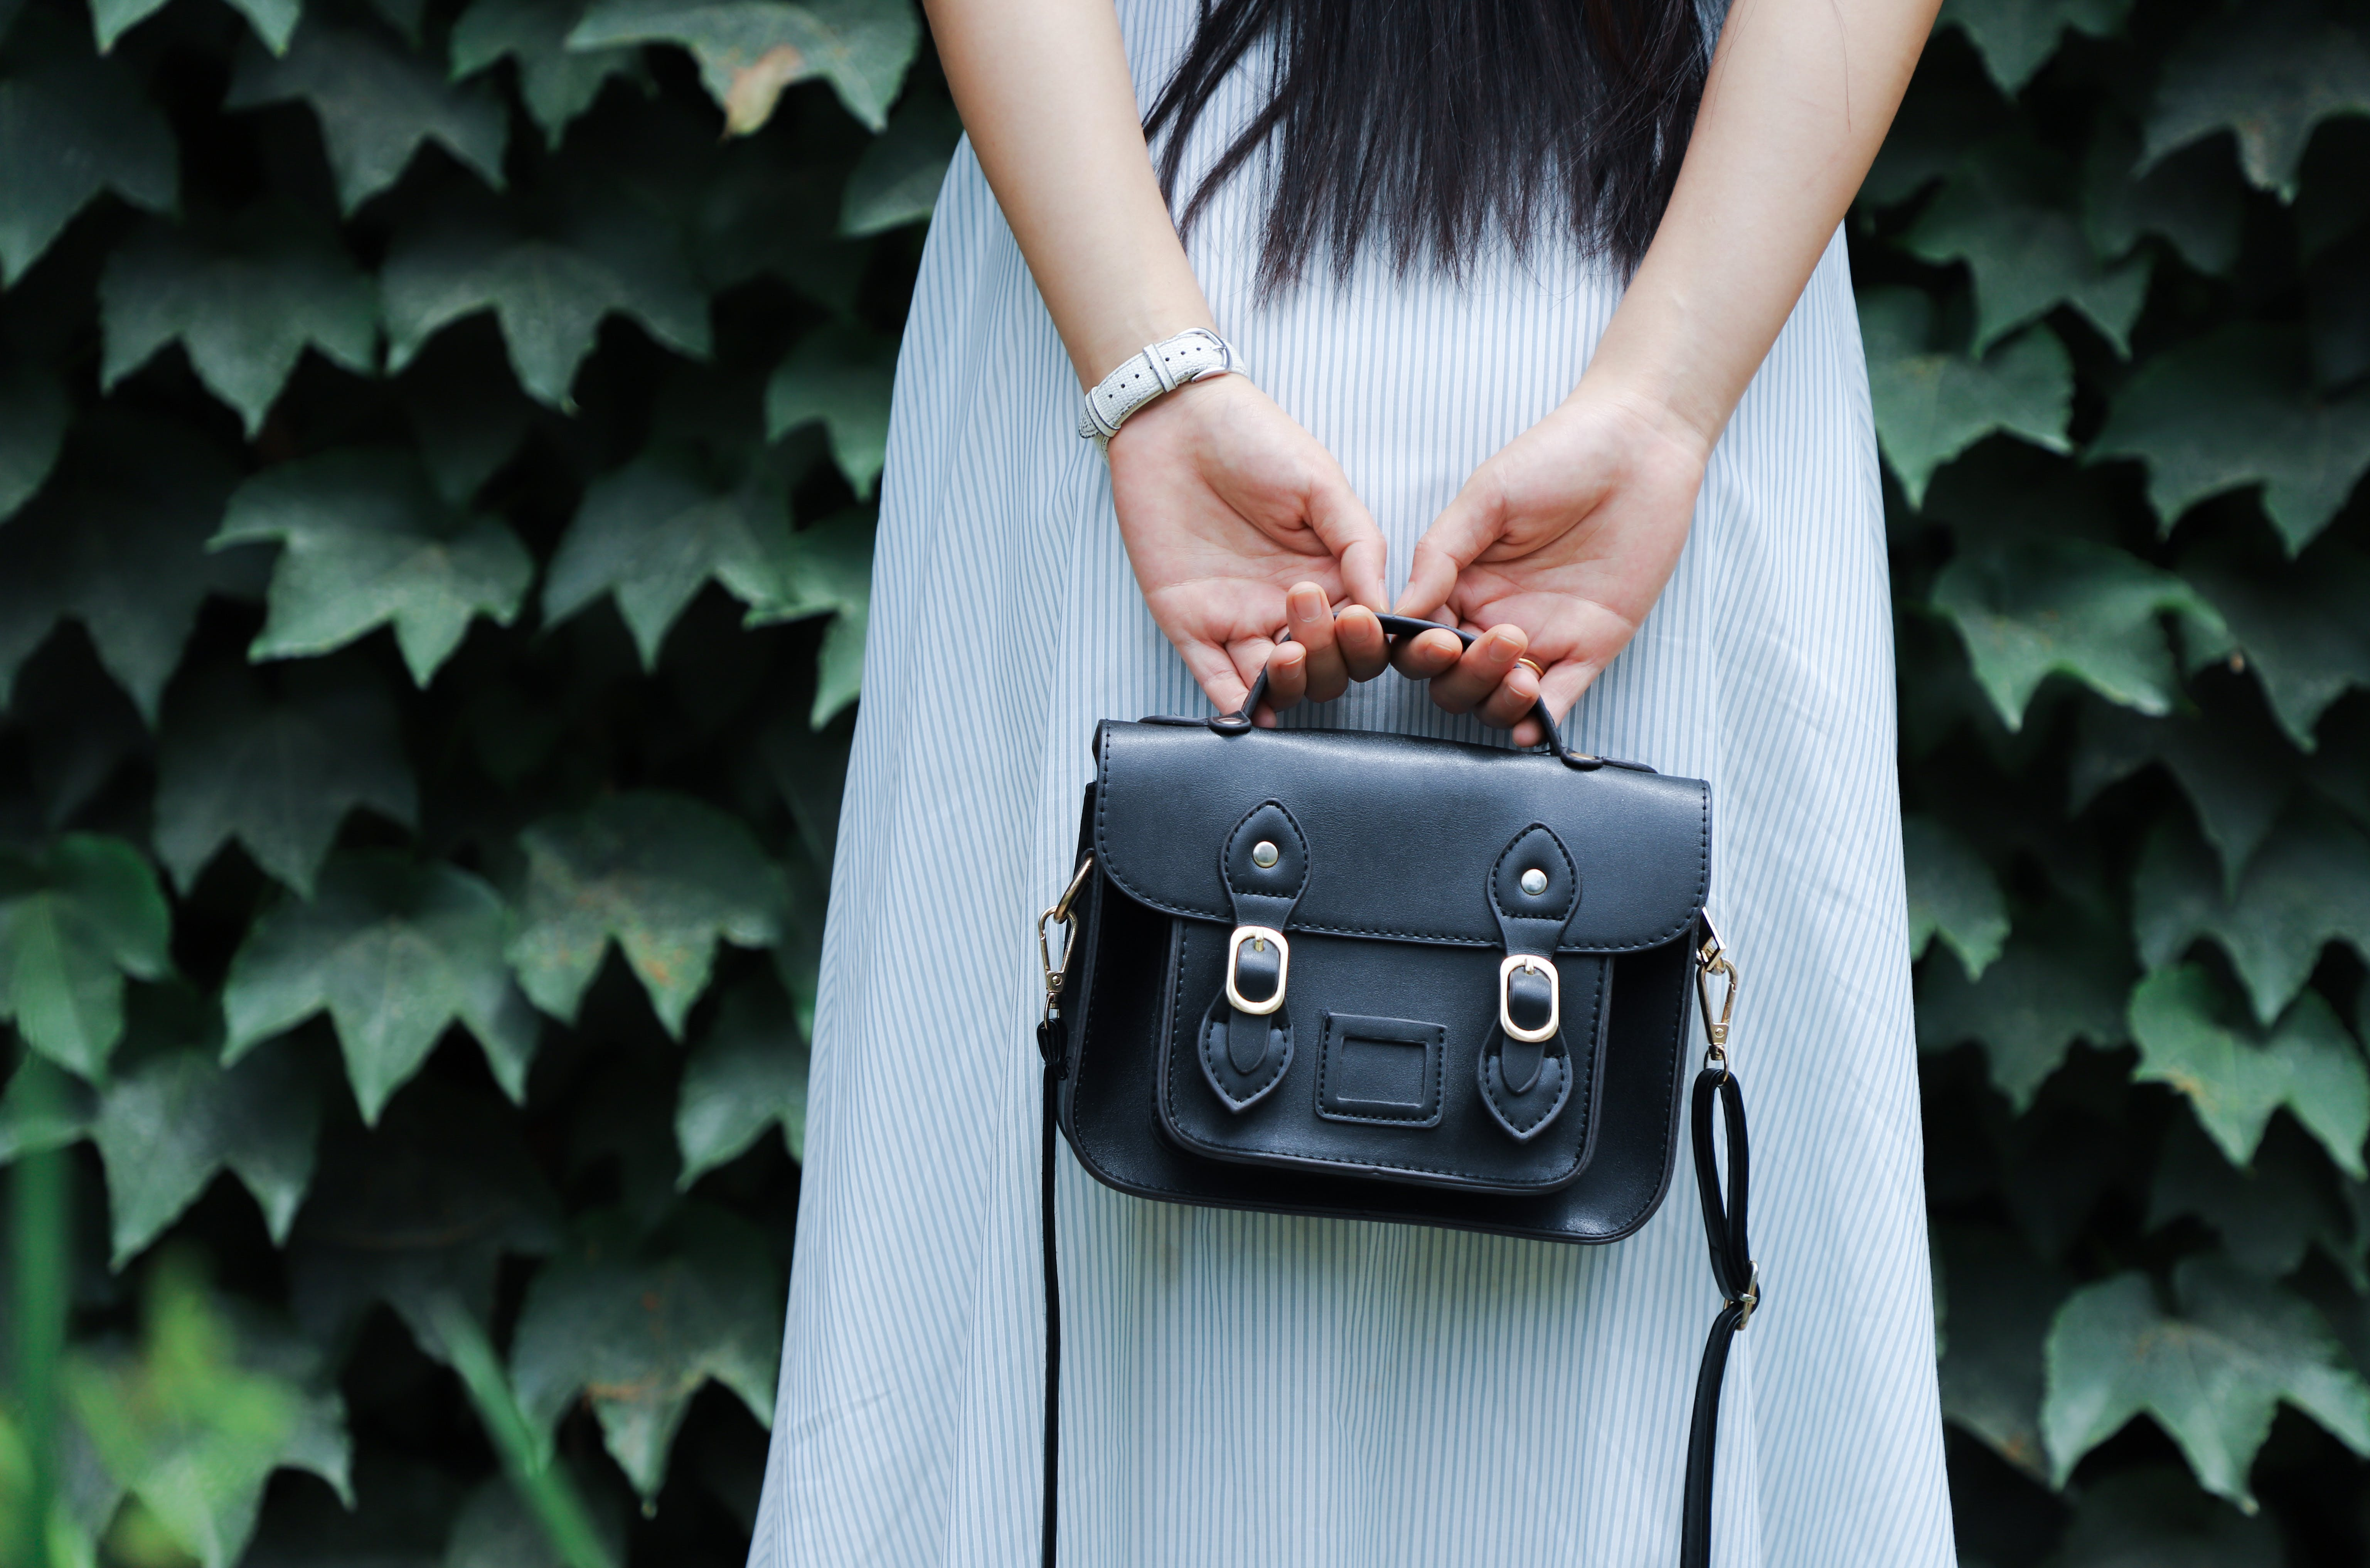 Woman Holding Black Leather Bag